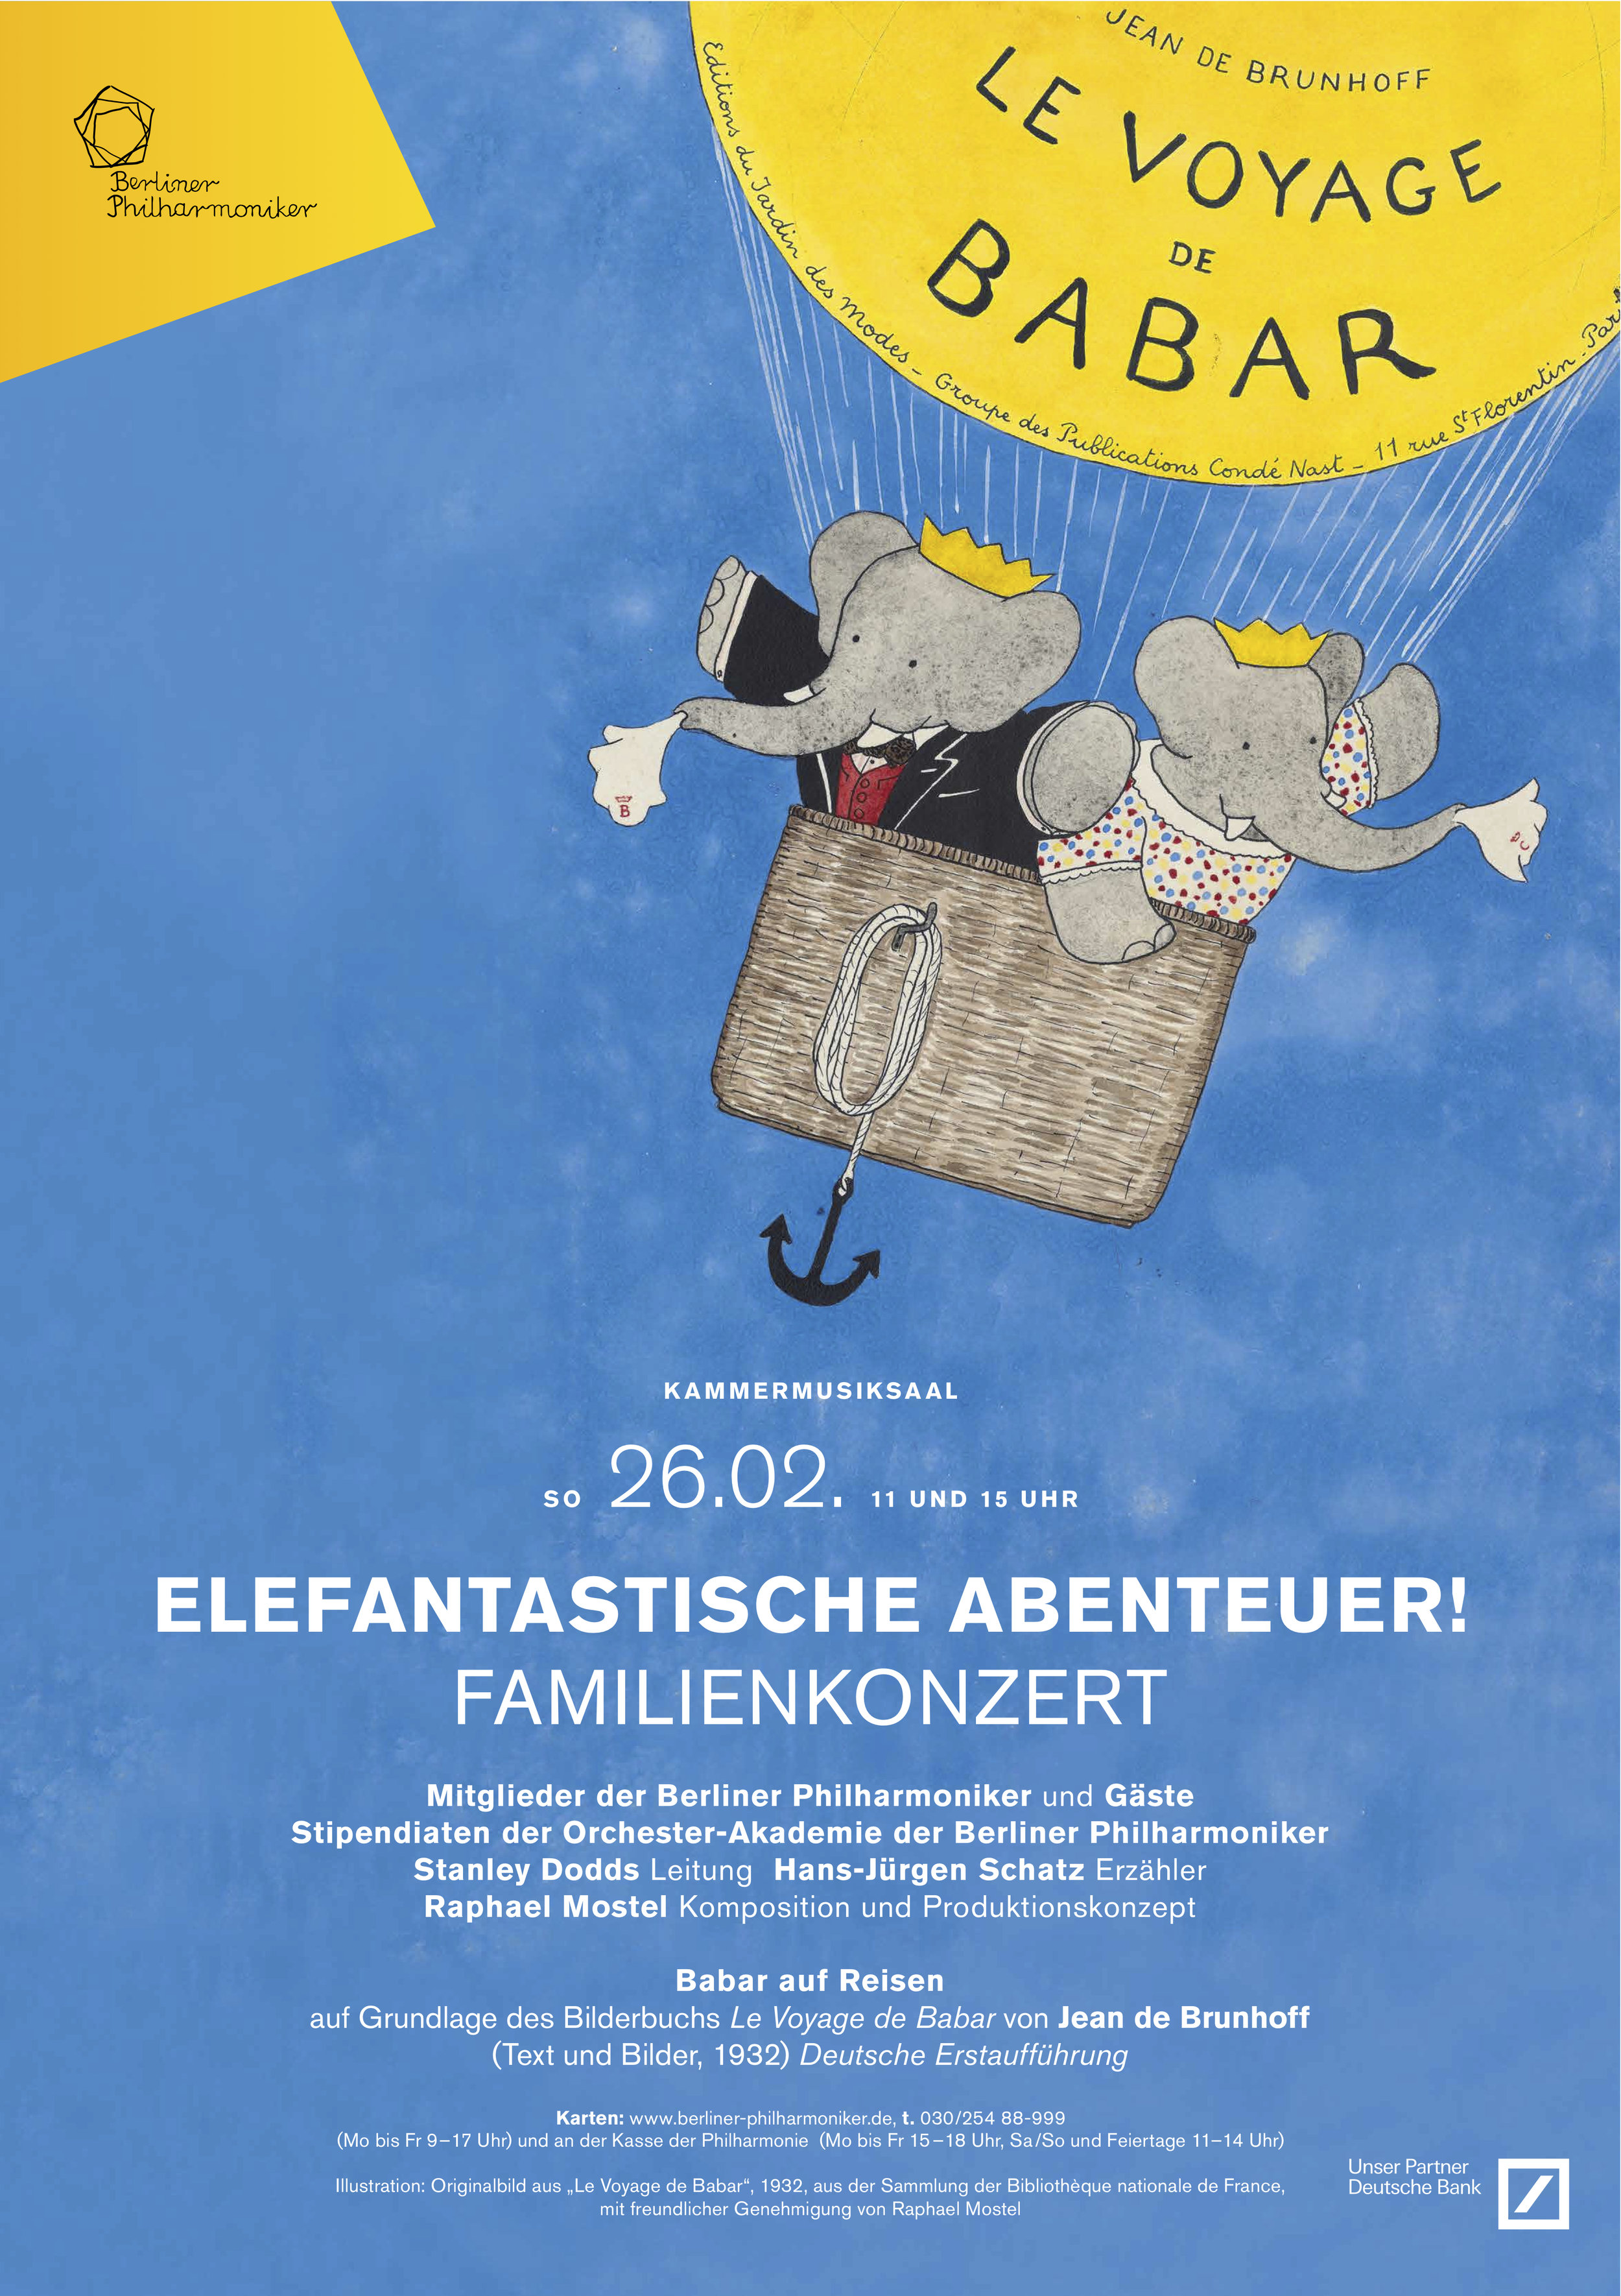 Poster for Berliner Philharmoniker premiere performances, with original Jean de Brunhoff watercolor from the Bibliothèque nationale de France, used with permission. The Berliner Philharmoniker presented the complete  Travels of Babar , in the original 8-musician scoring in the full production (adapted for the in-the-round architecture of the Berlin Philharmonie, with the world premiere of the complete multimedia in HD